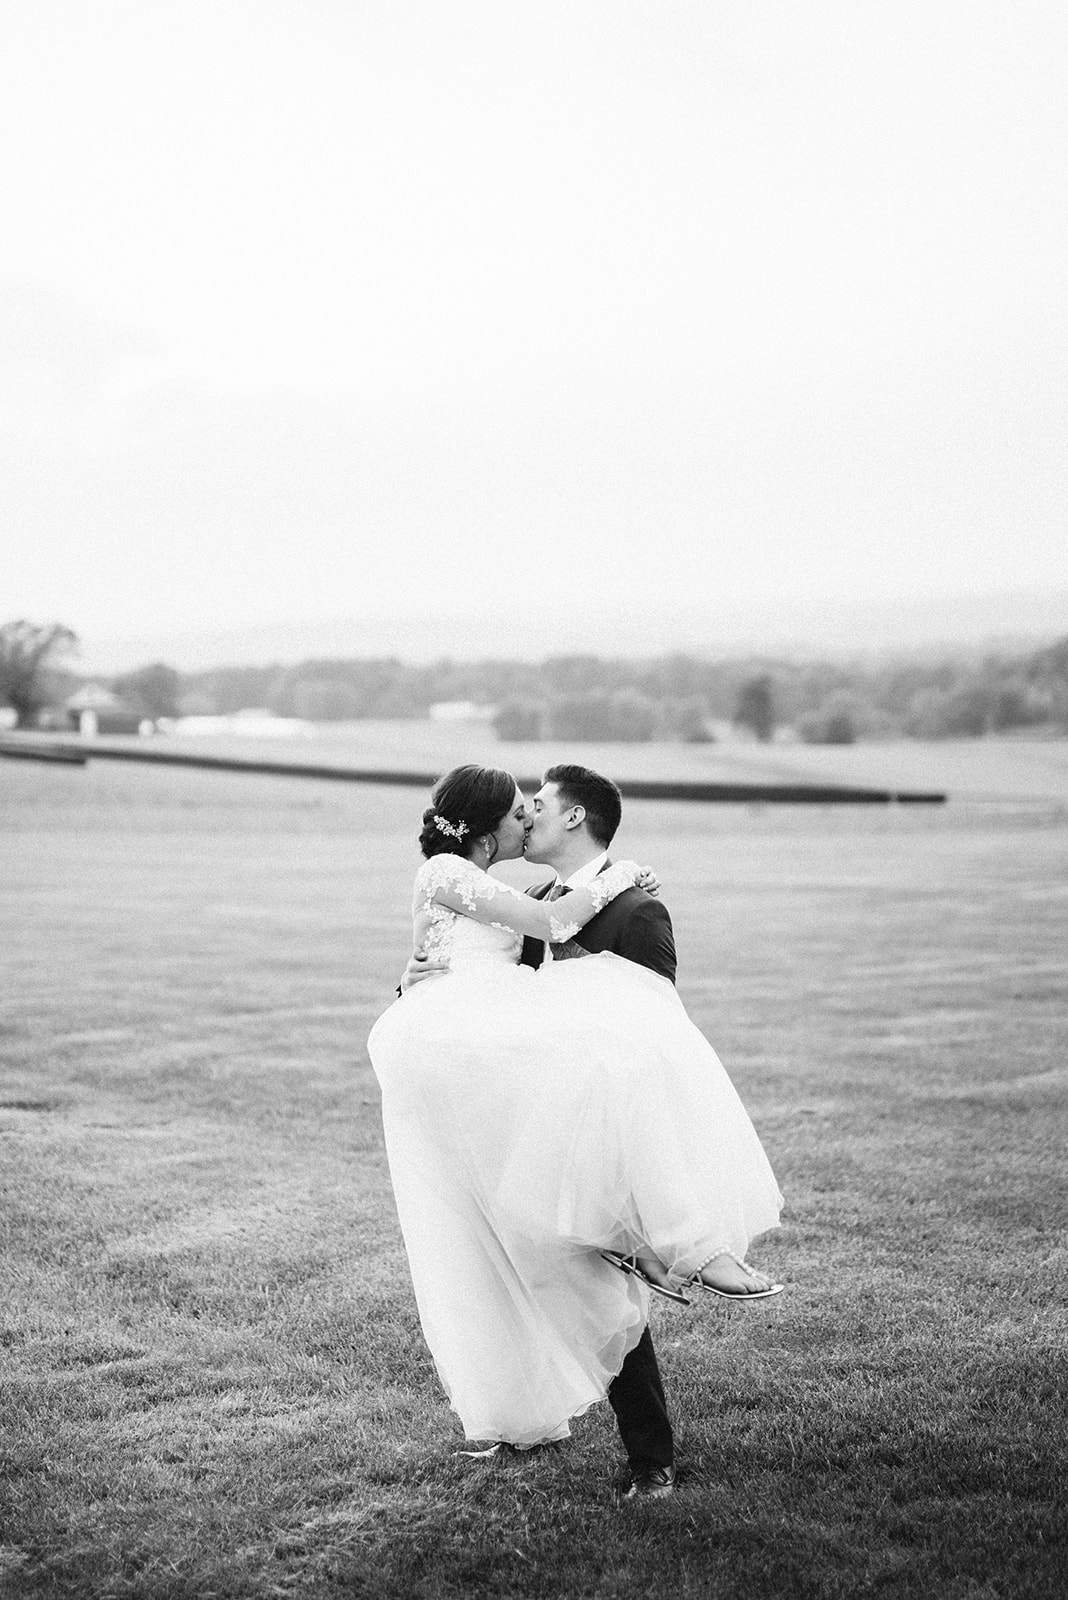 Drumore Estate wedding photographer based in Lancaster Pennsylvania.